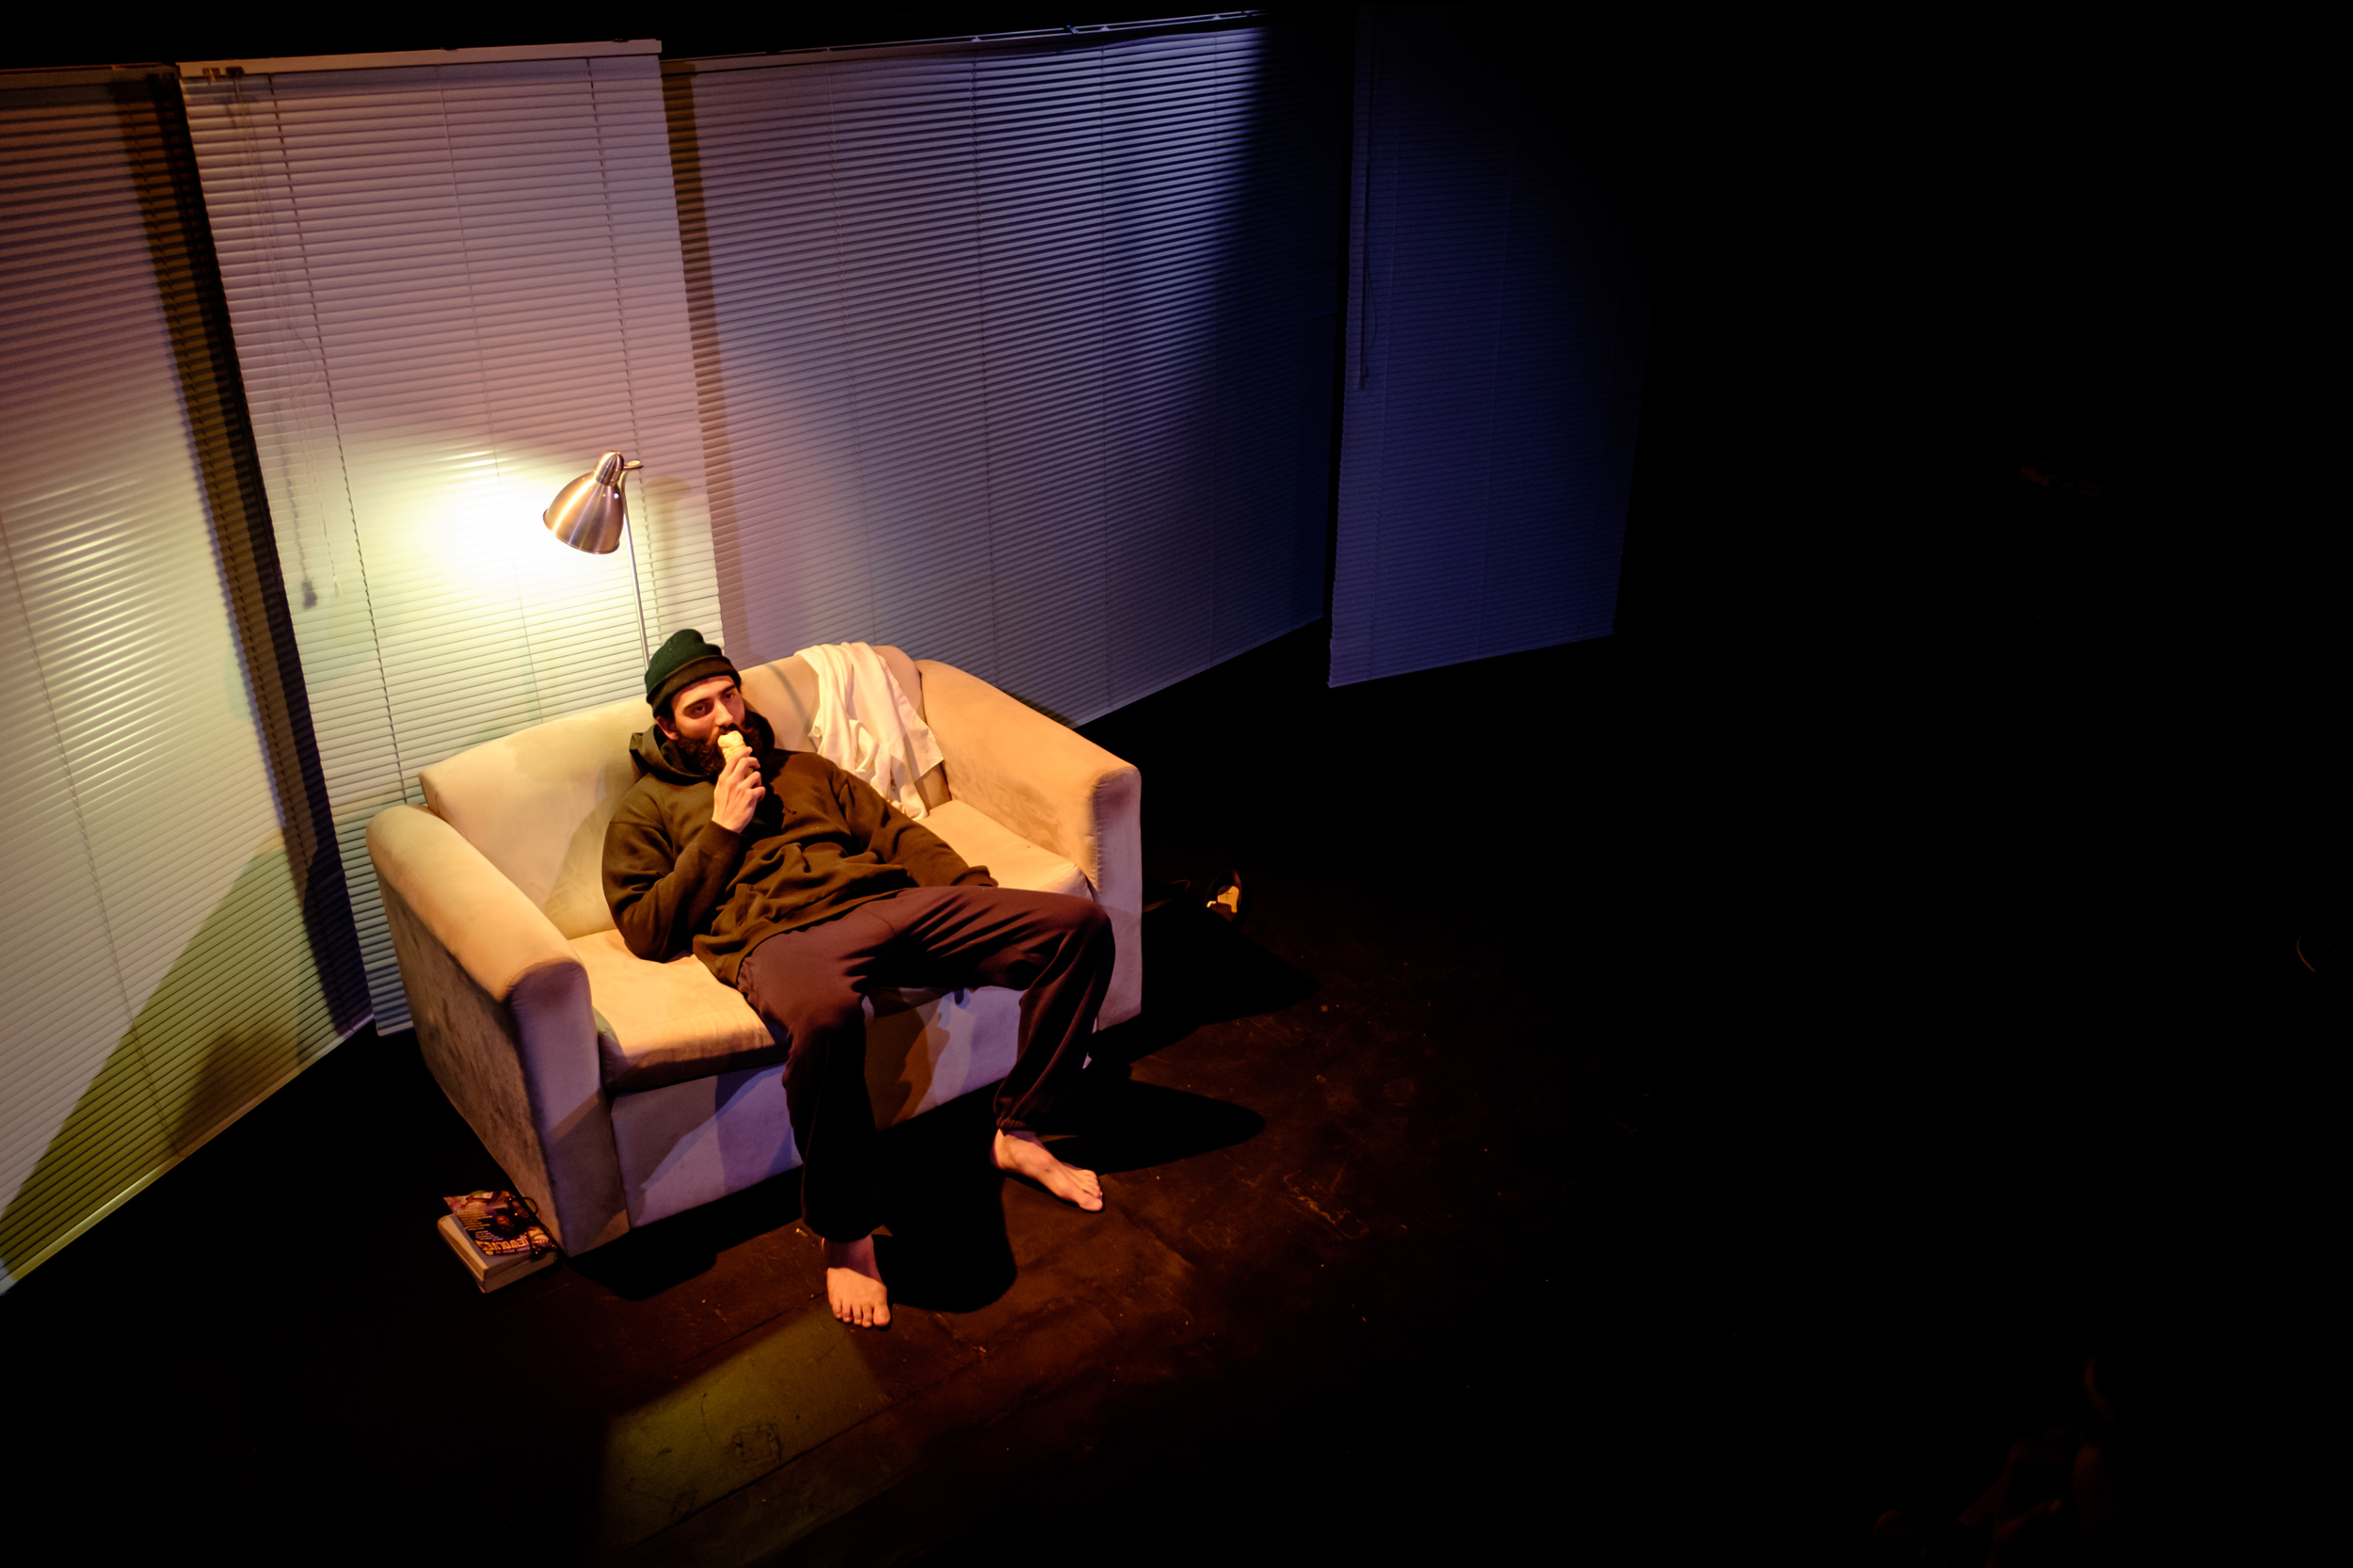 """""""What we see here is not naturalism. It is heightened reality. [...] Lara Week's set achieves the necessary trapped-in-stasis feel, using nothing more than Venetian blinds and a couch.""""   —Review, Stage Whispers"""